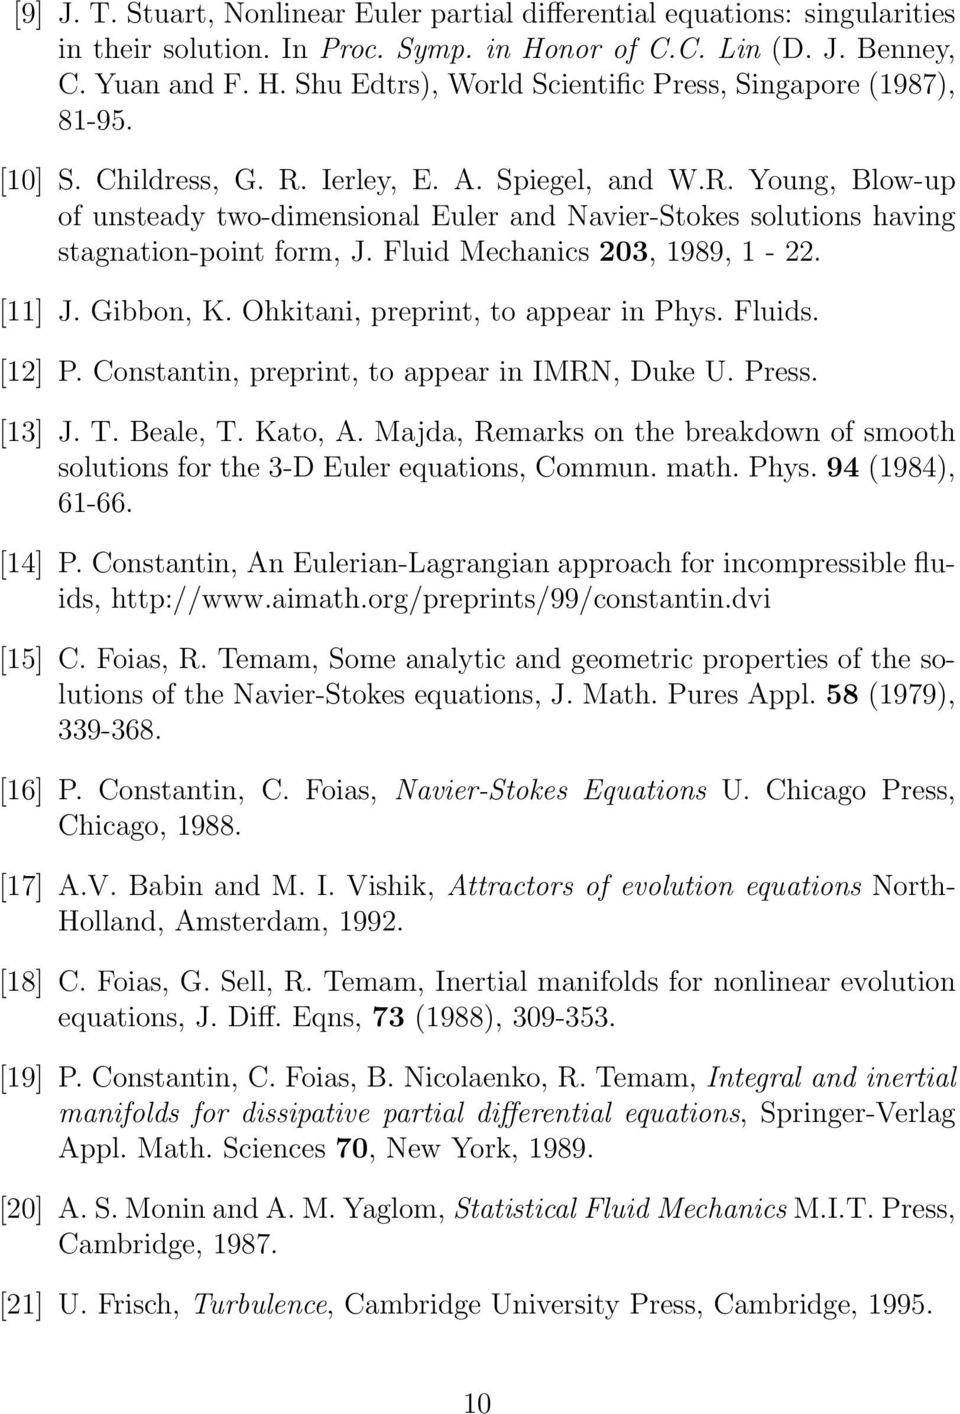 [11] J. Gibbon, K. Ohkitani, preprint, to appear in Phys. Fluids. [12] P. Constantin, preprint, to appear in IMRN, Duke U. Press. [13] J. T. Beale, T. Kato, A.